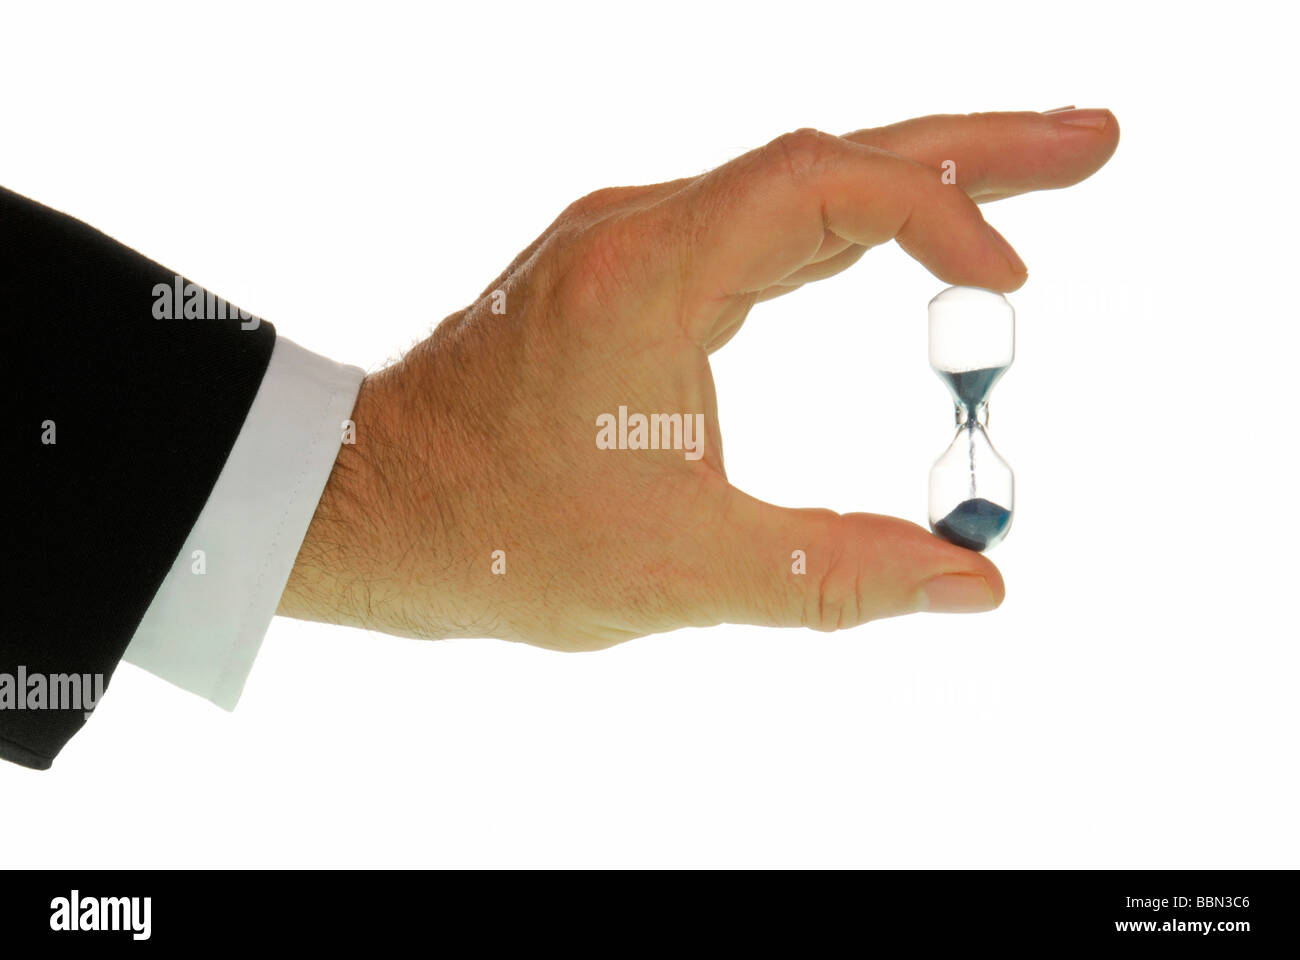 Manager-hand with hourglass, symbolic image for time pressure - Stock Image